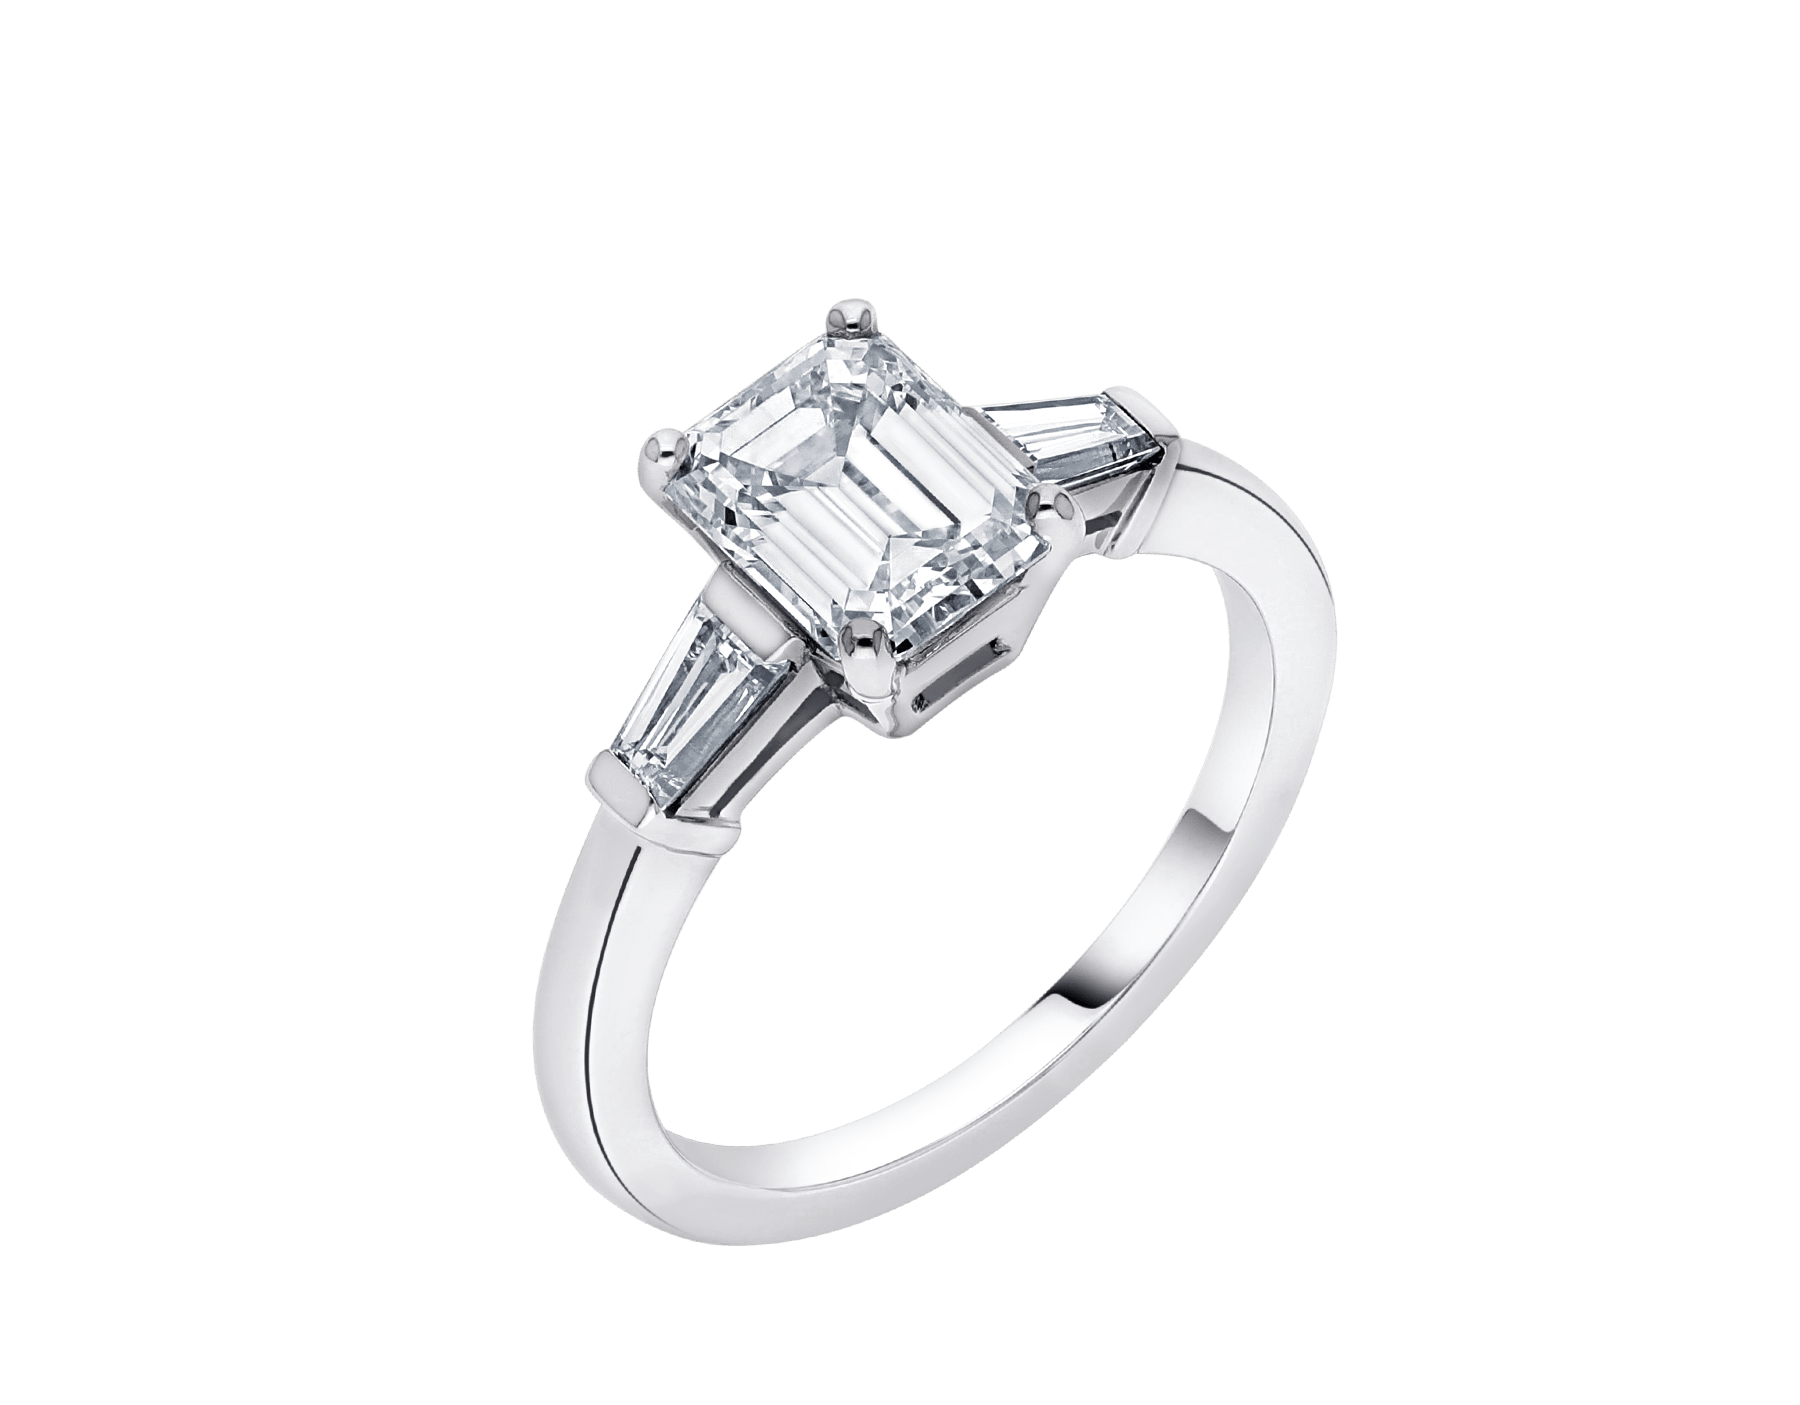 Griffe solitaire ring in platinum with one emerald cut diamond and two side diamonds 331649 image 2